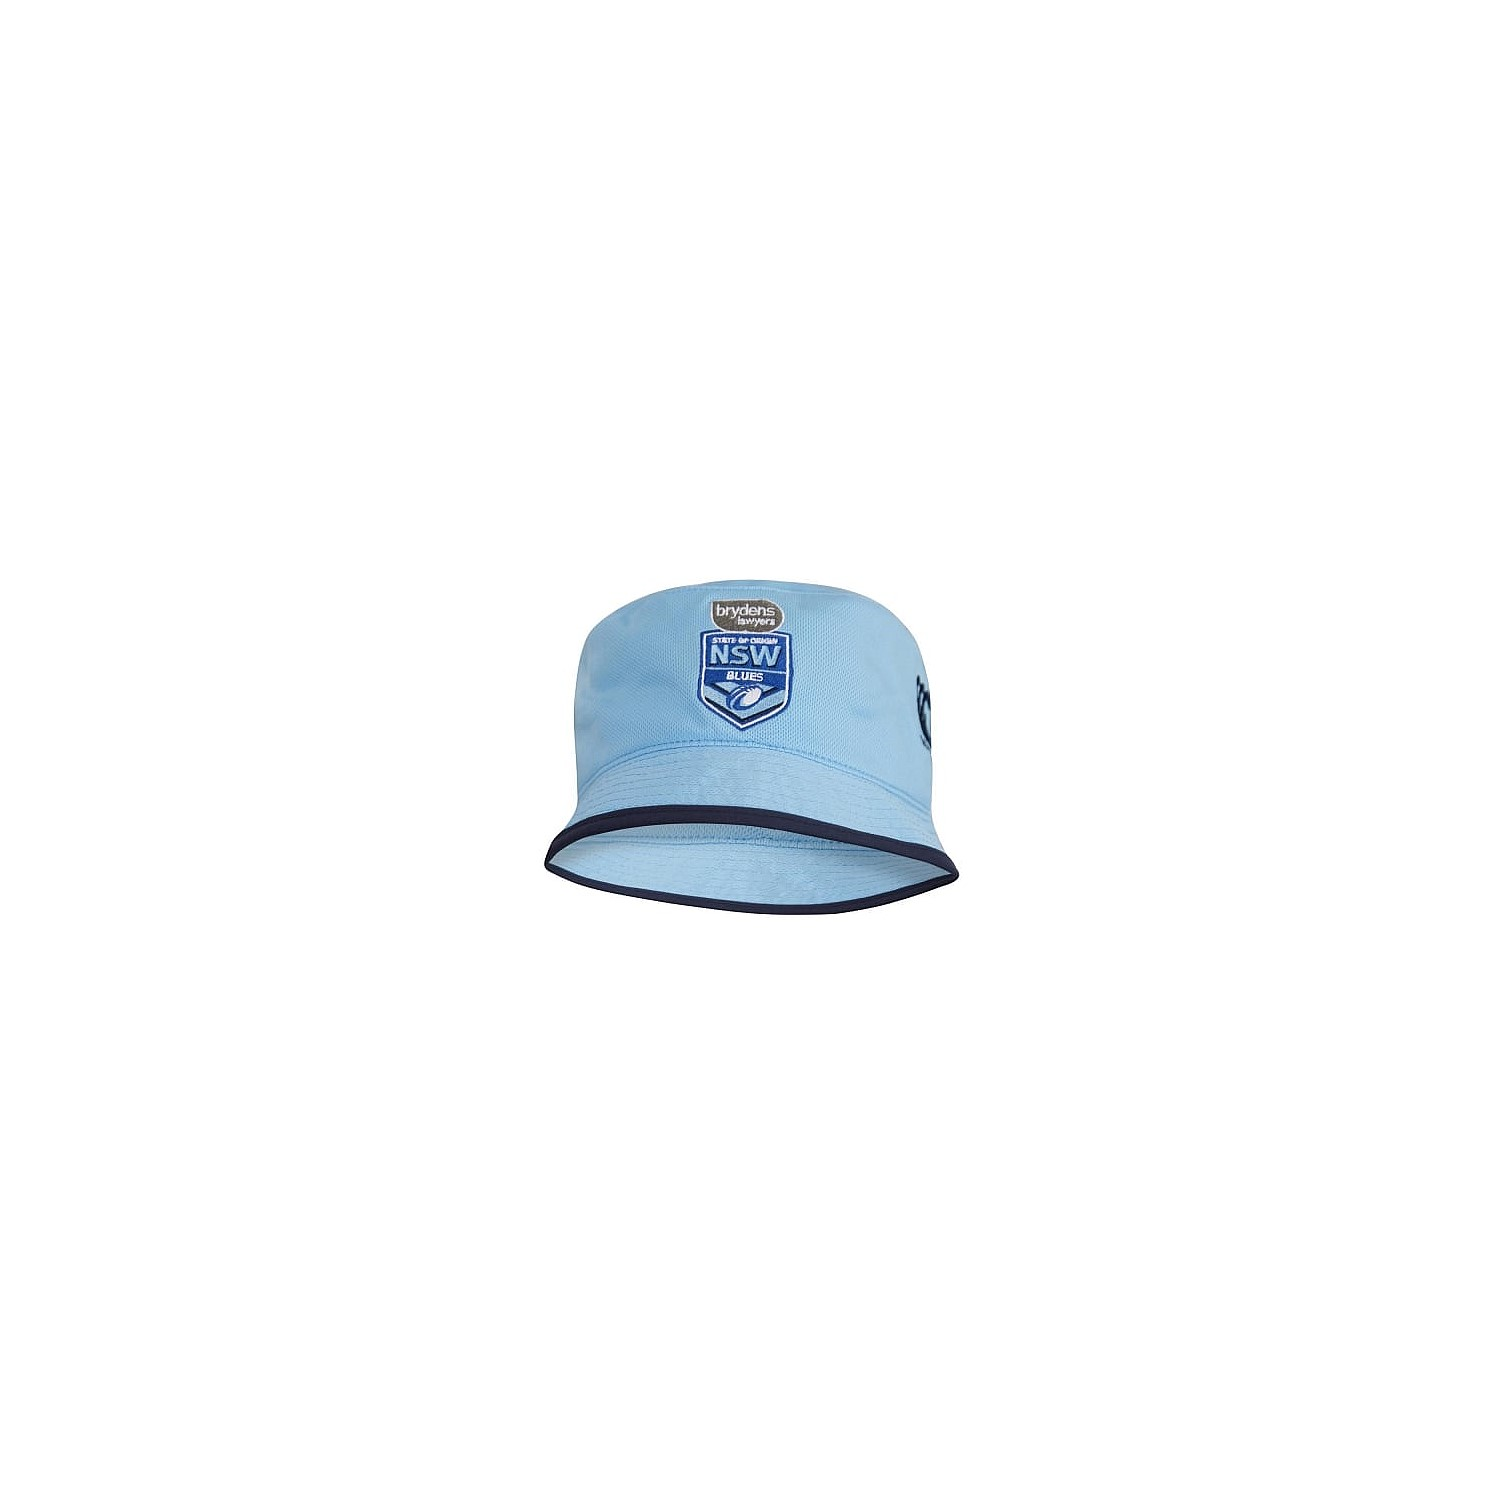 New South Wales Bucket Hat 2018 05c60e3957bf